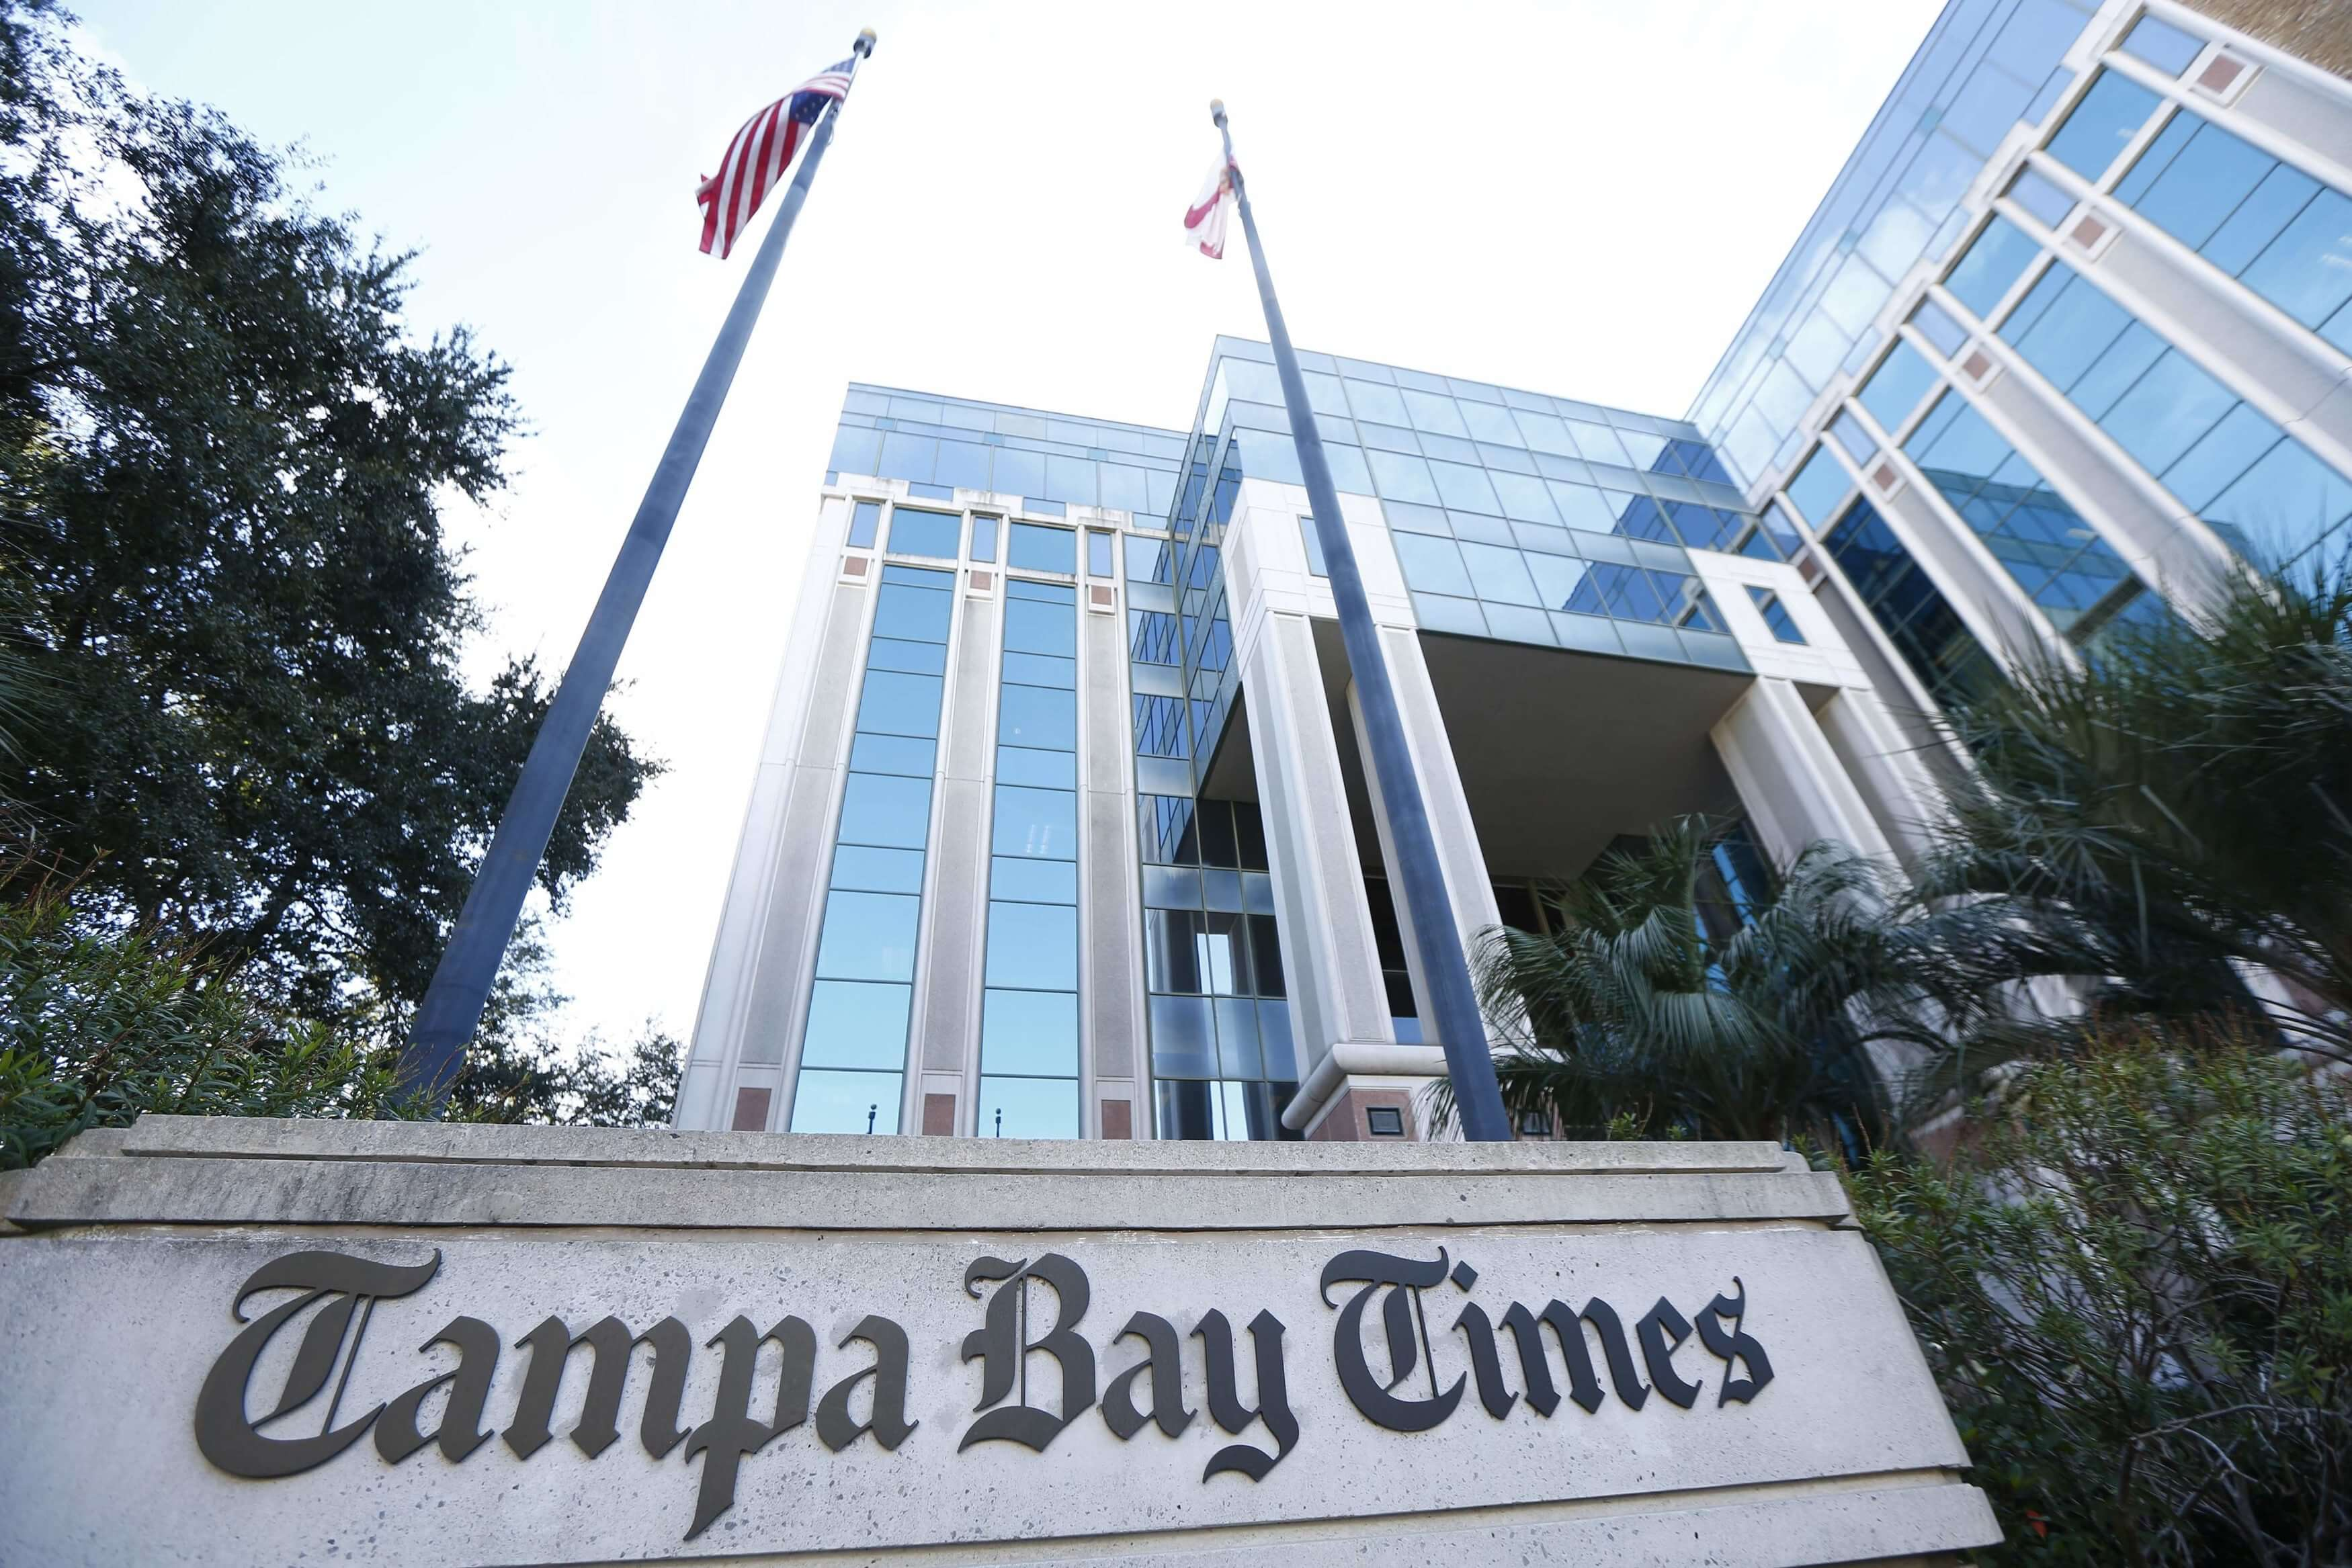 Tampa Bay Times Buildings